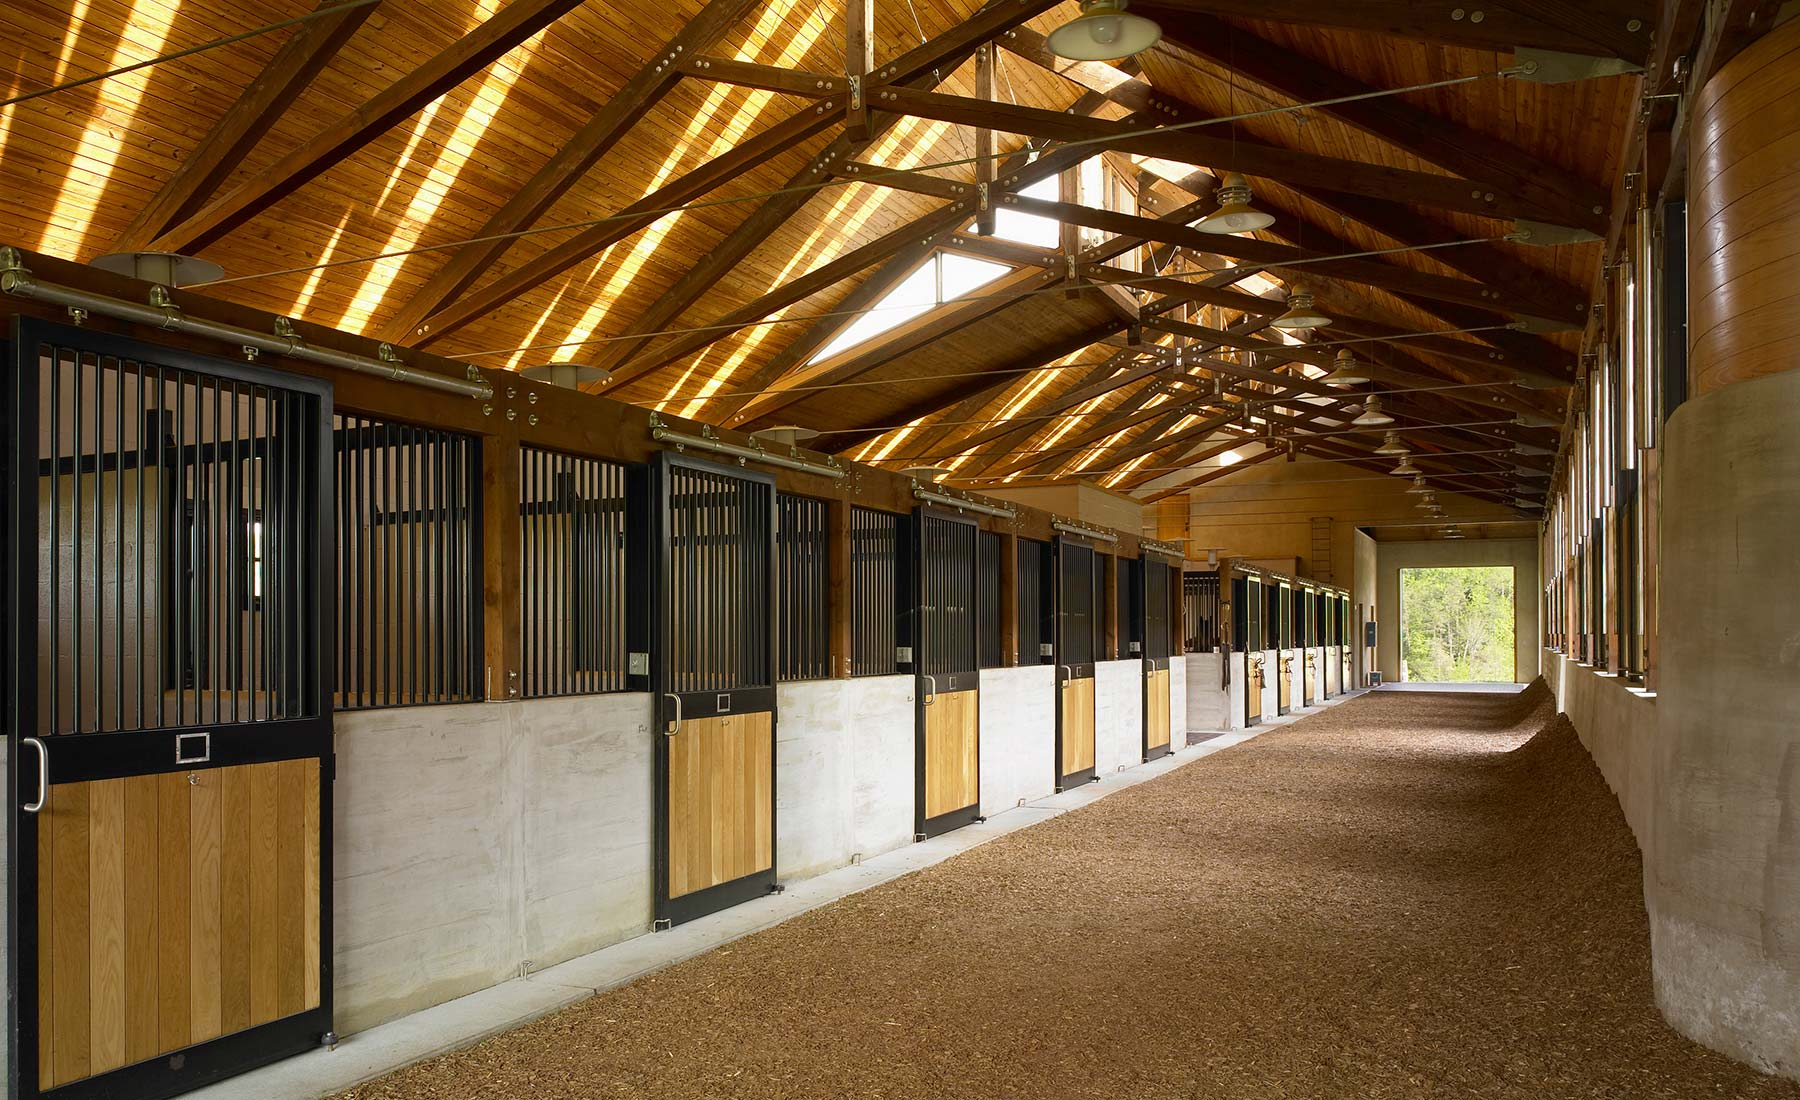 Burning Daylight Stables Architecture and Design